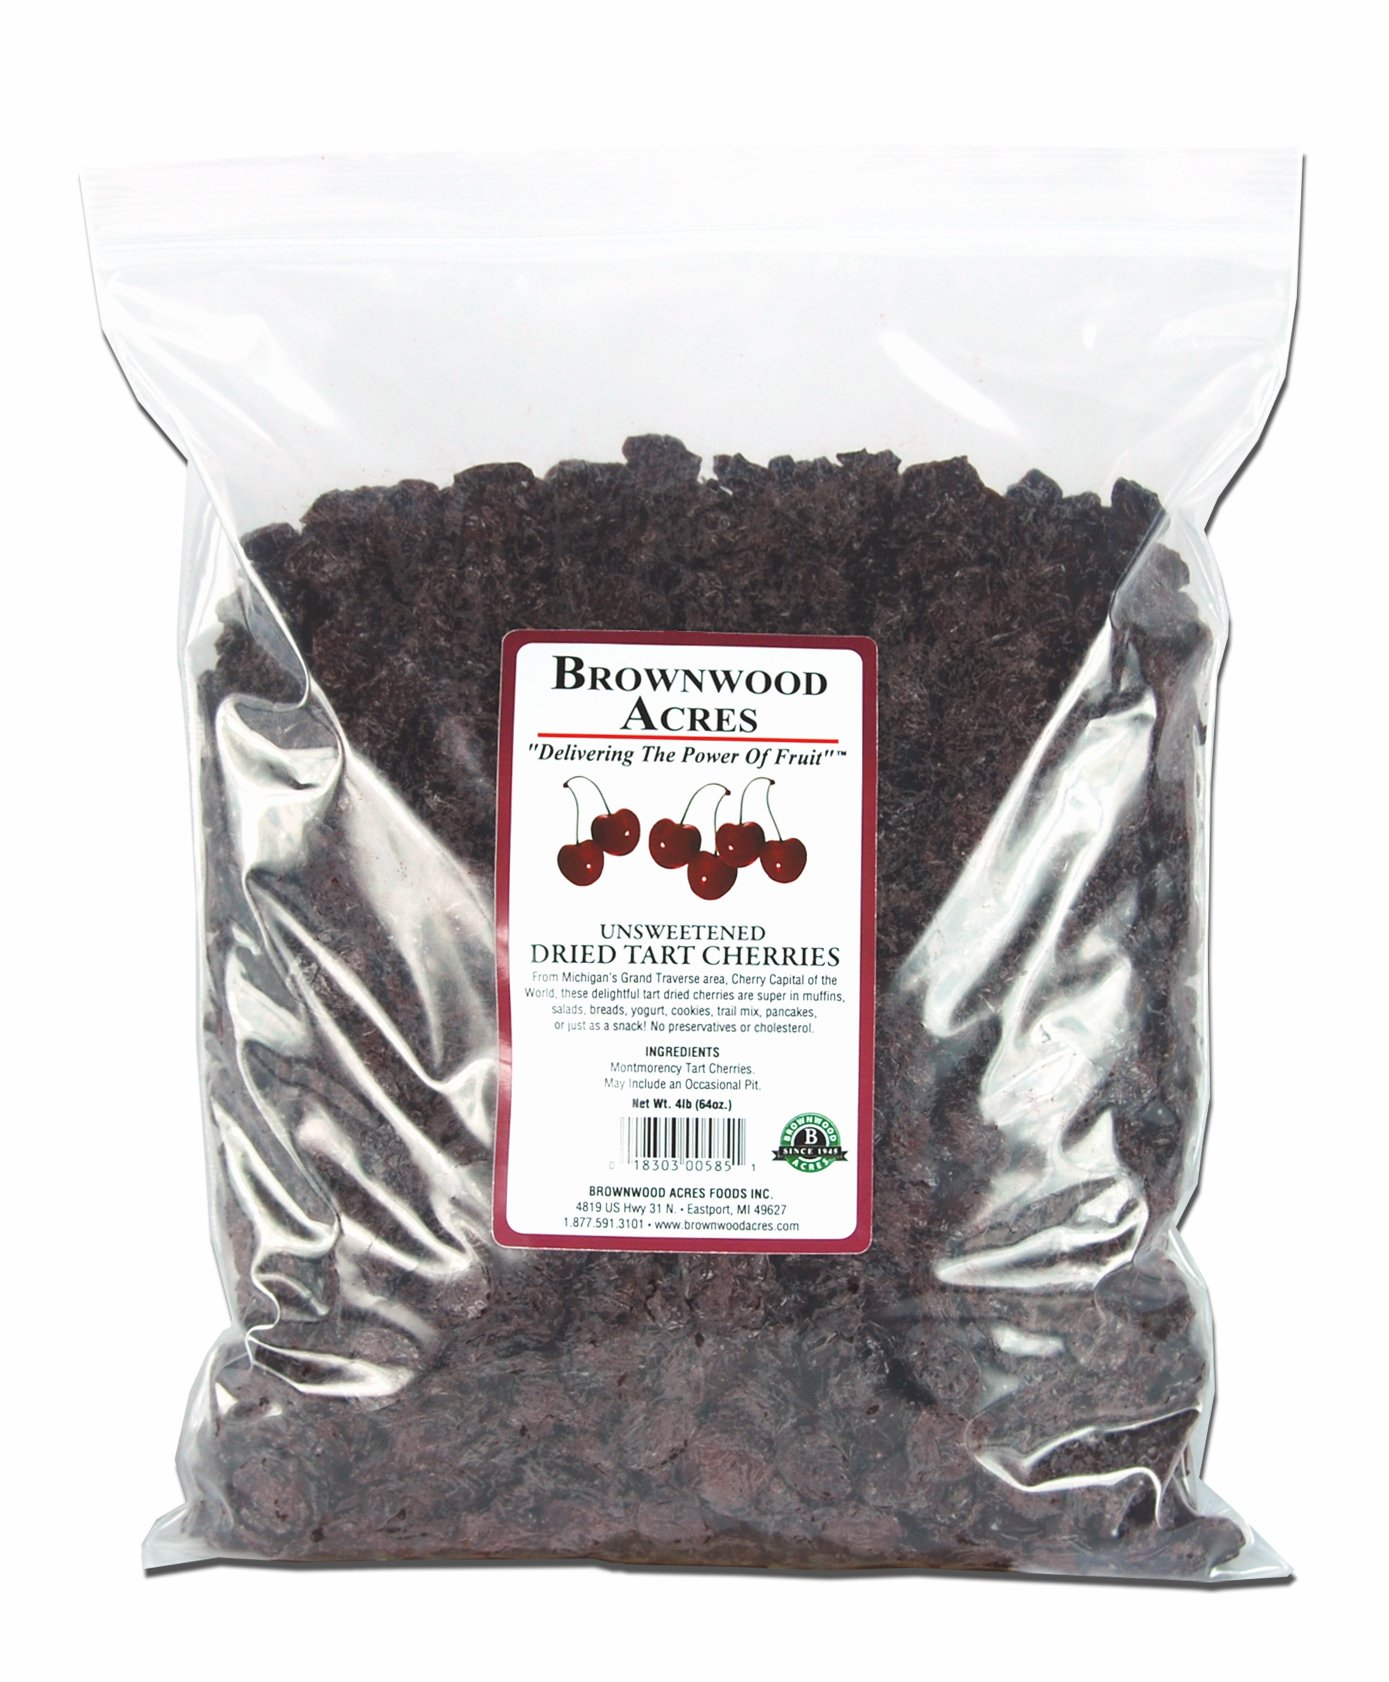 Unsweetened Dried Cherries by Brownwood Acres - No Added Sugars, Oils or fillers - Just Cherries! (4 Pound)